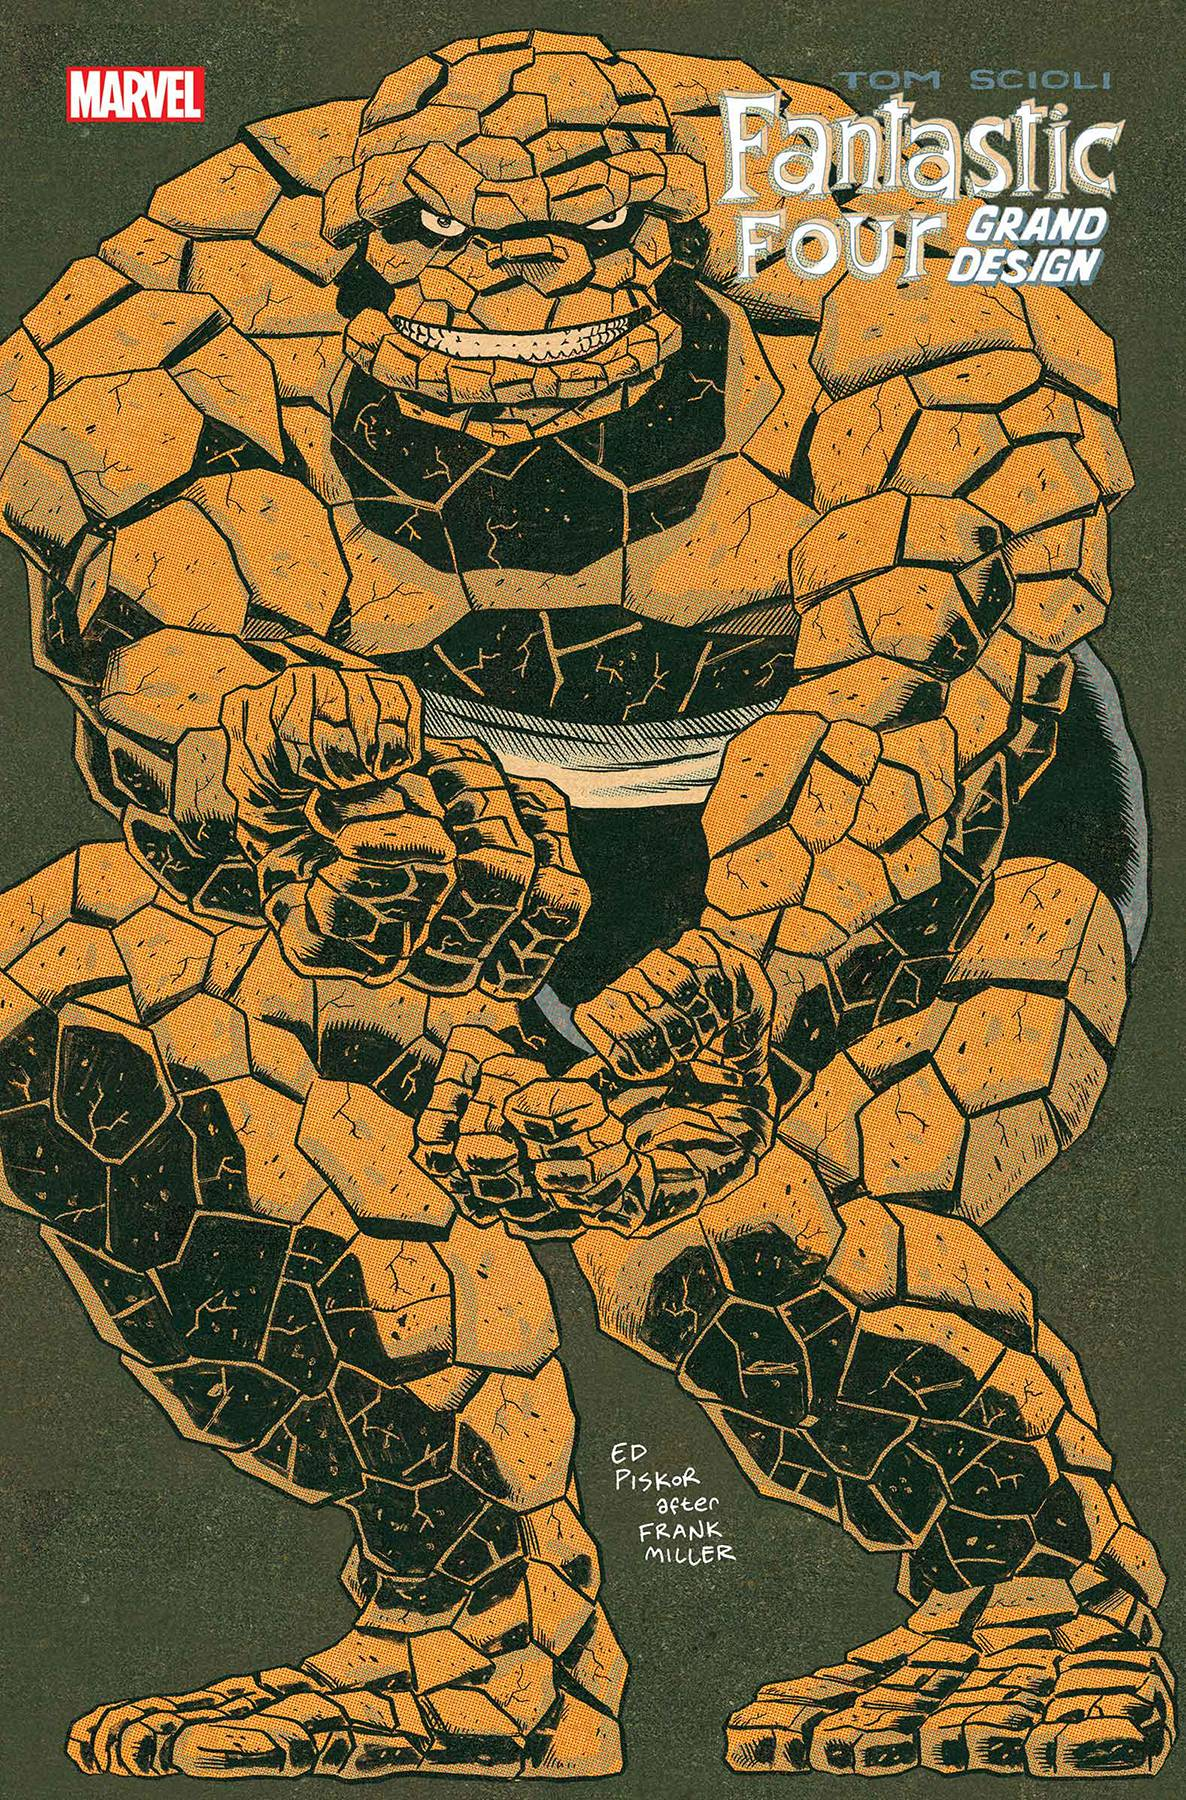 FANTASTIC FOUR GRAND DESIGN 1 of 2 PISKOR VAR.jpg